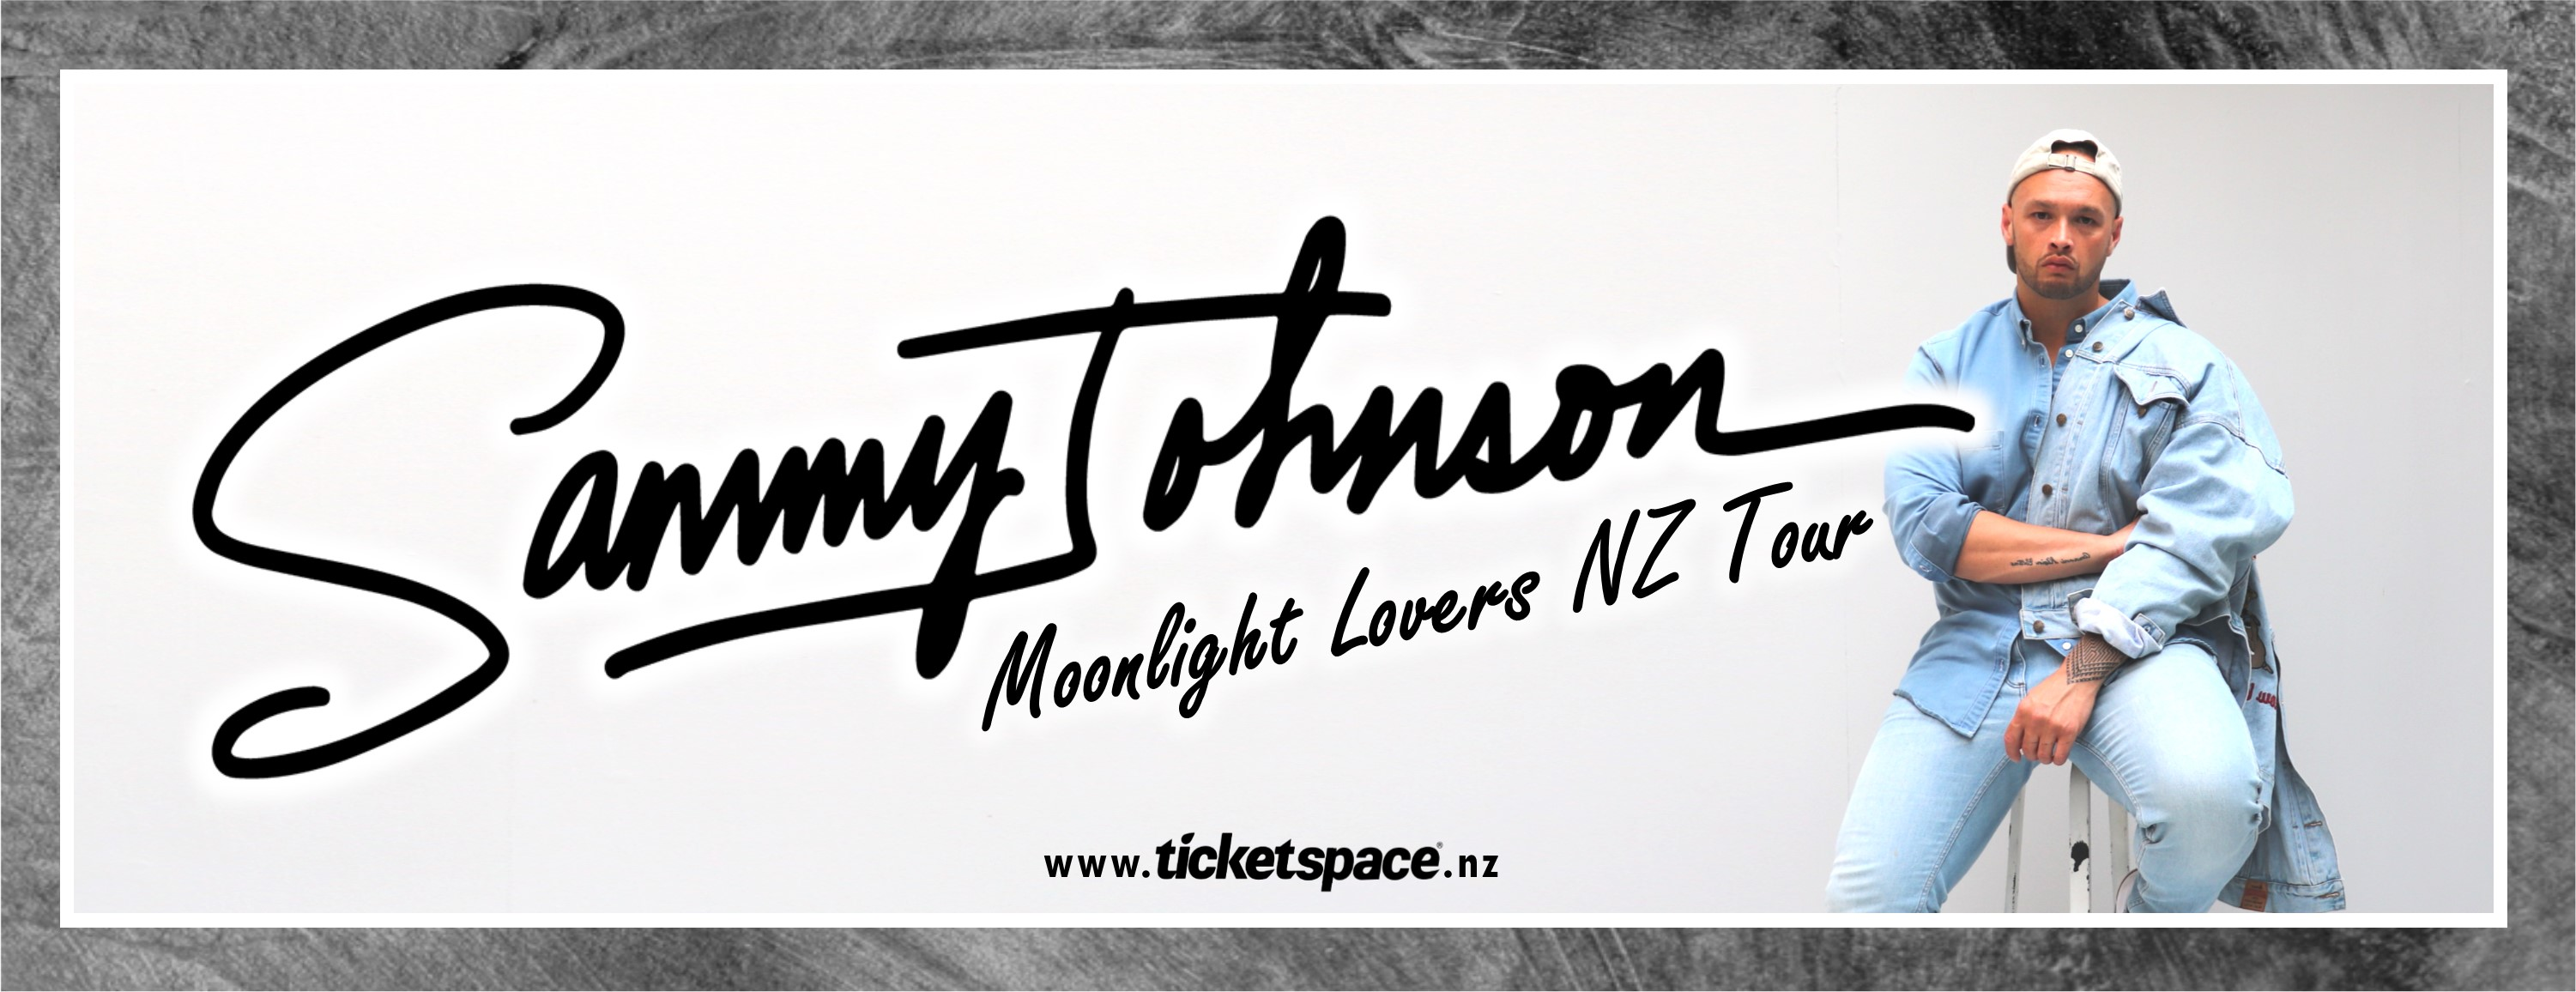 Tickets for SAMMY J - Palmerston North in Palmerston North from Ticketspace